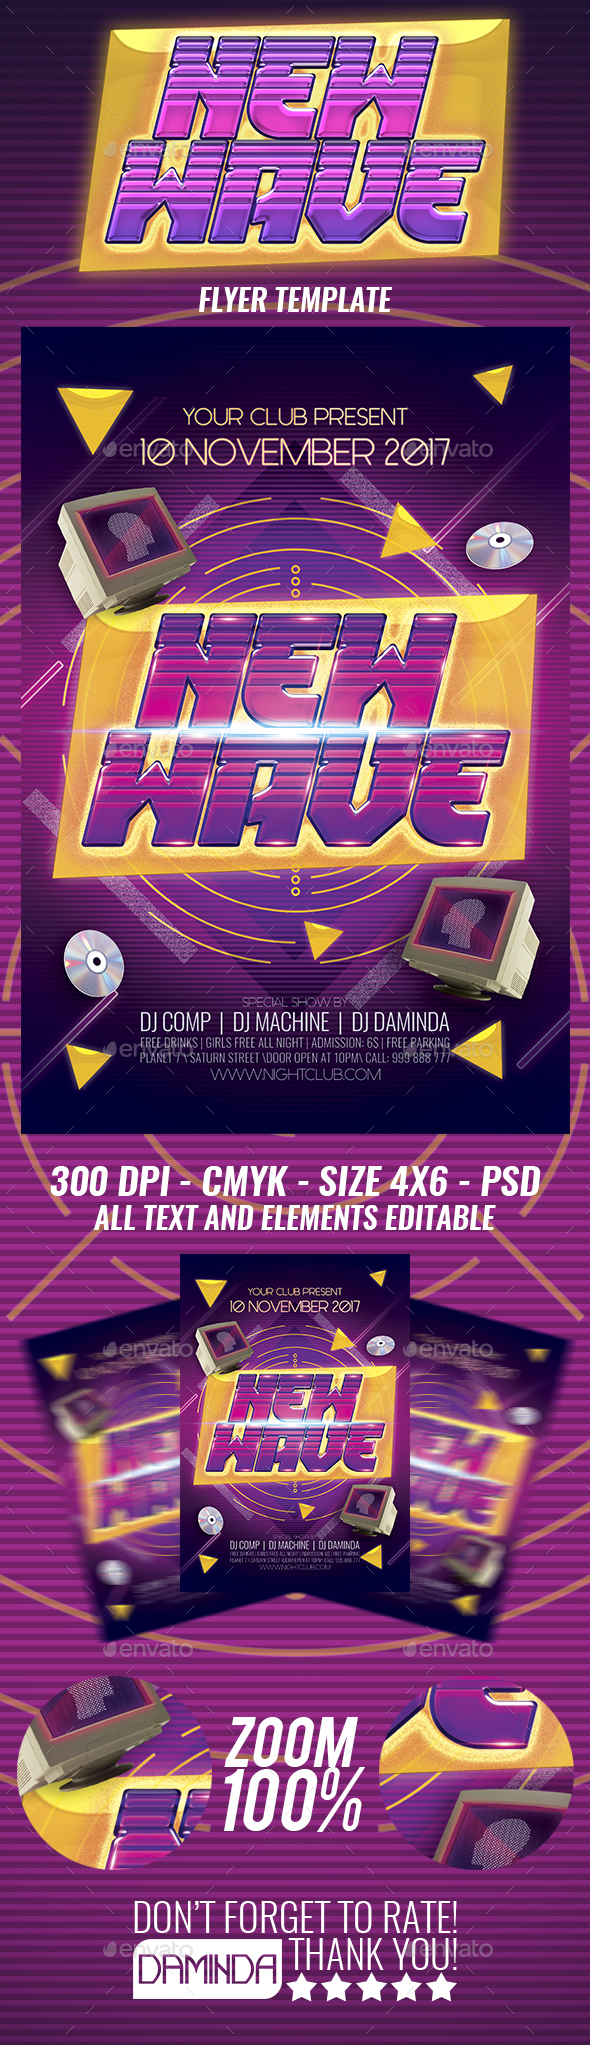 New Wave 3 Flyer Template - Clubs & Parties Events